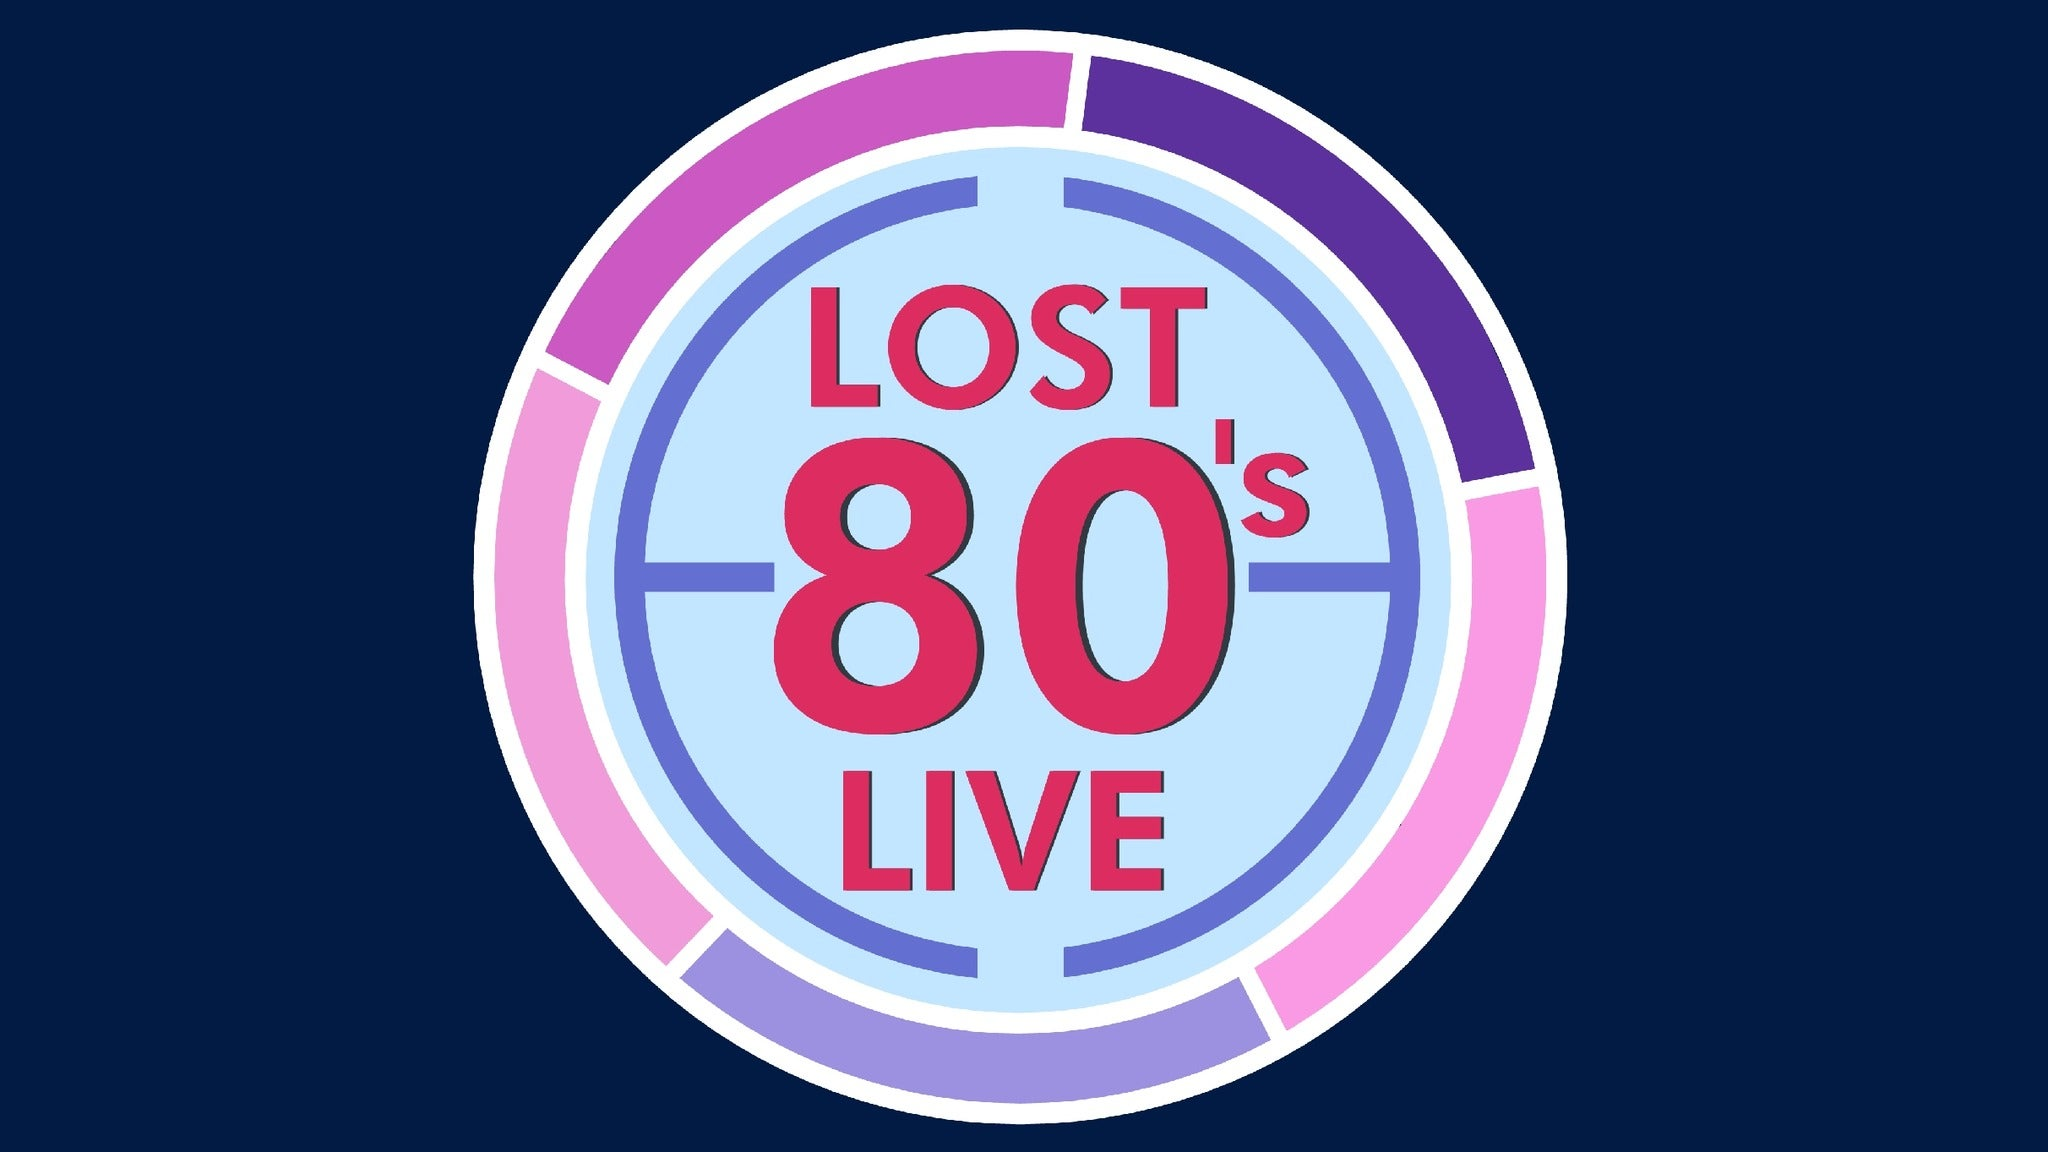 Lost 80s Live at Frederick Brown Jr. Amphitheater